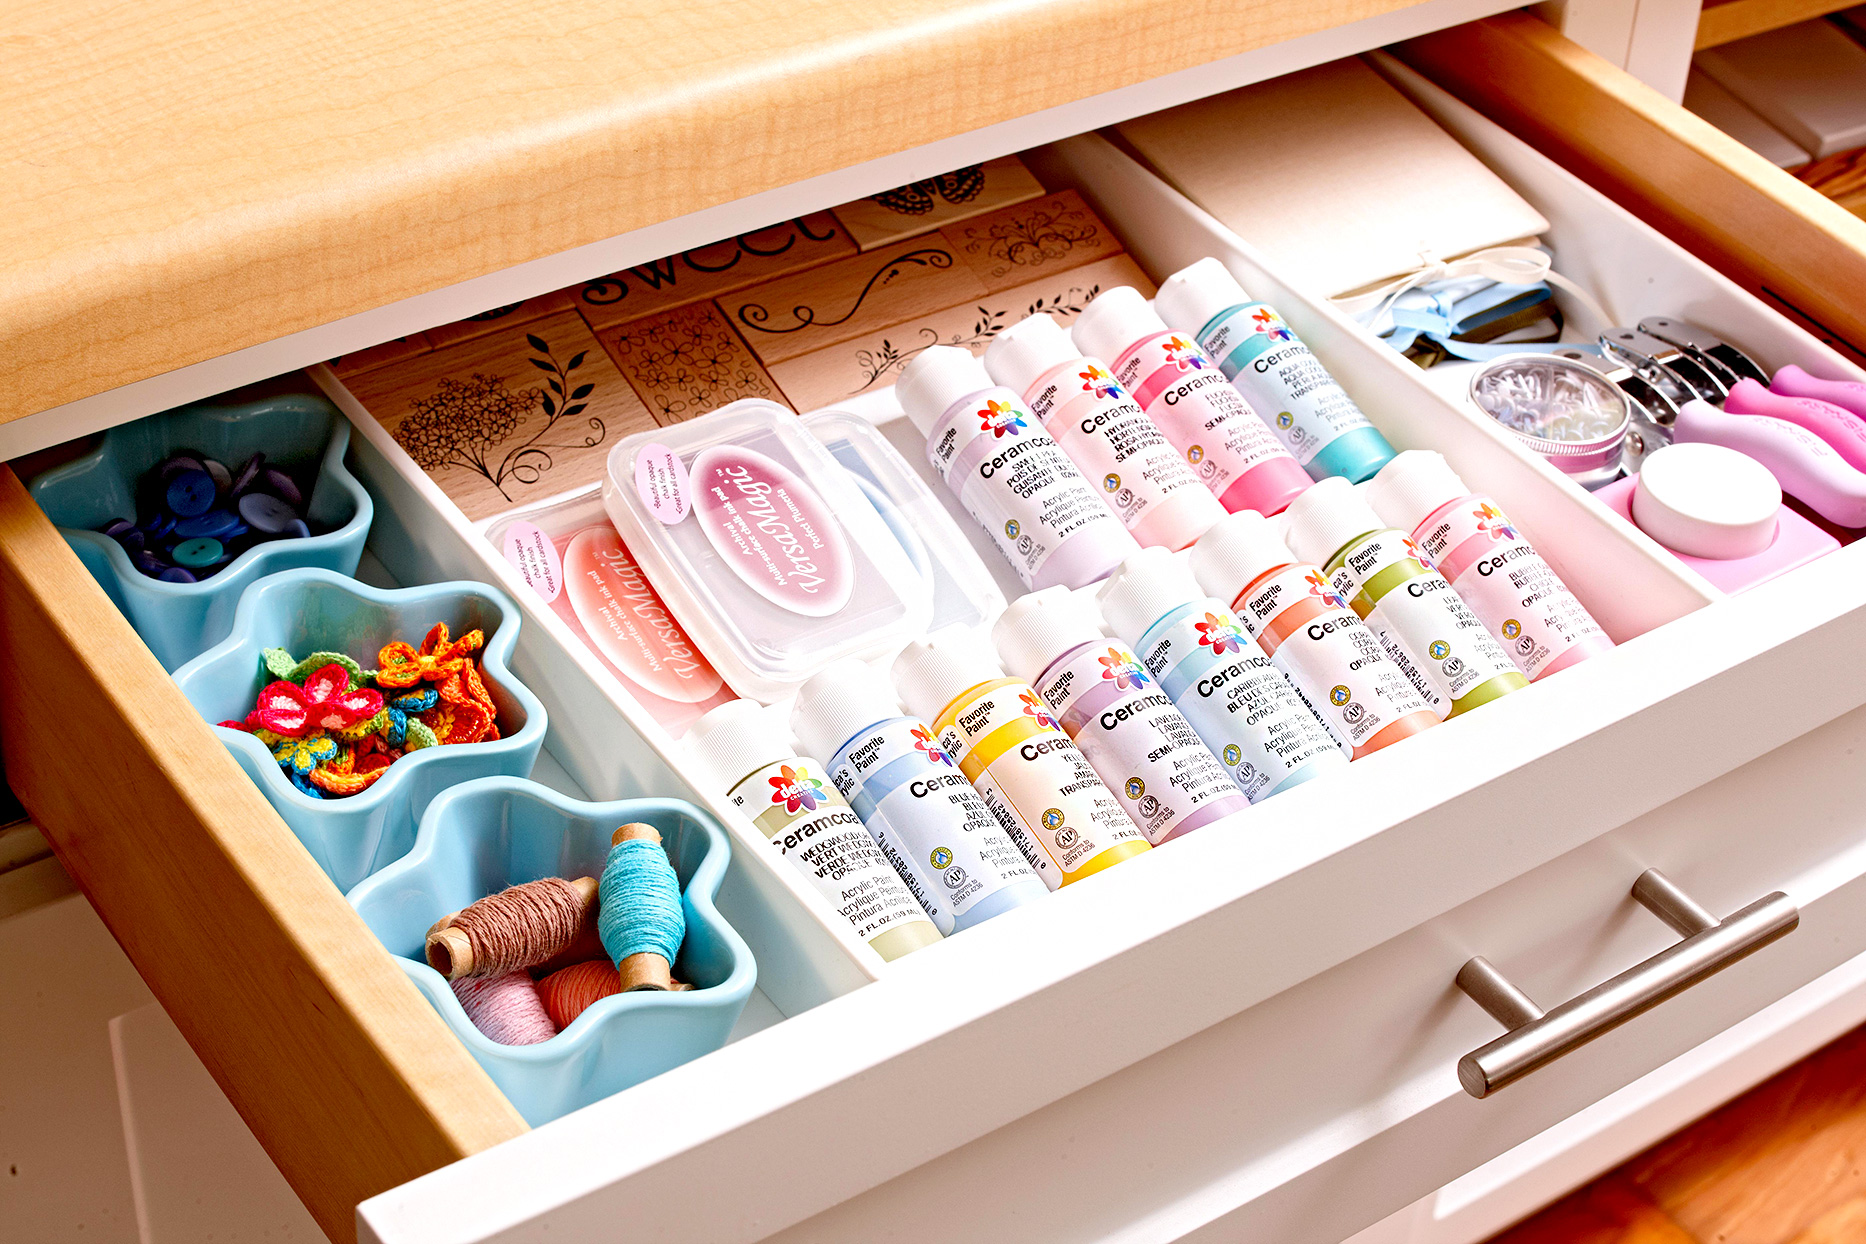 Drawer filled with organized supplies